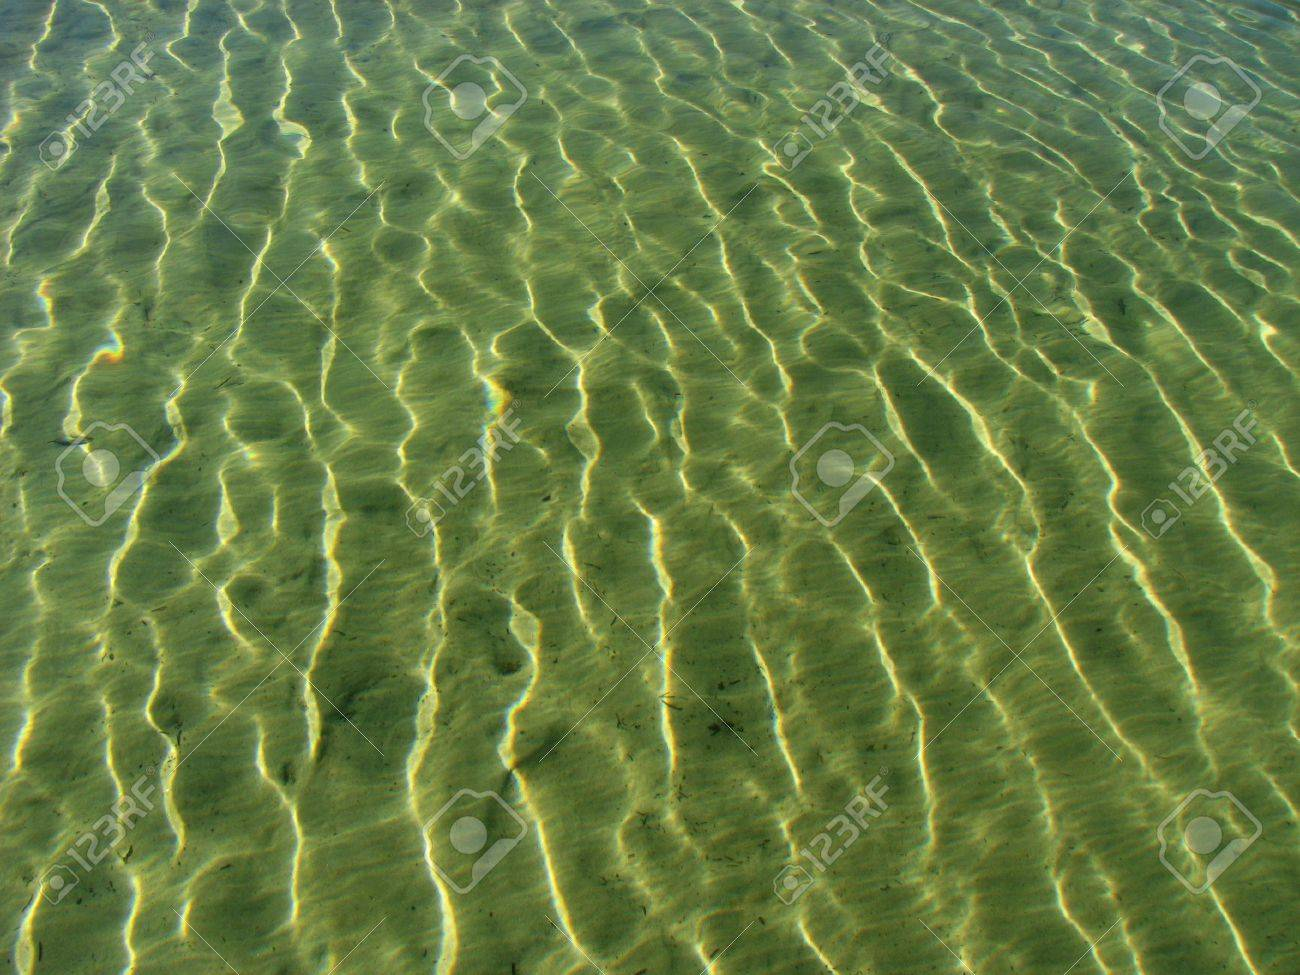 rippled background from the refraction of sunlight in shallow water Stock Photo - 3608691